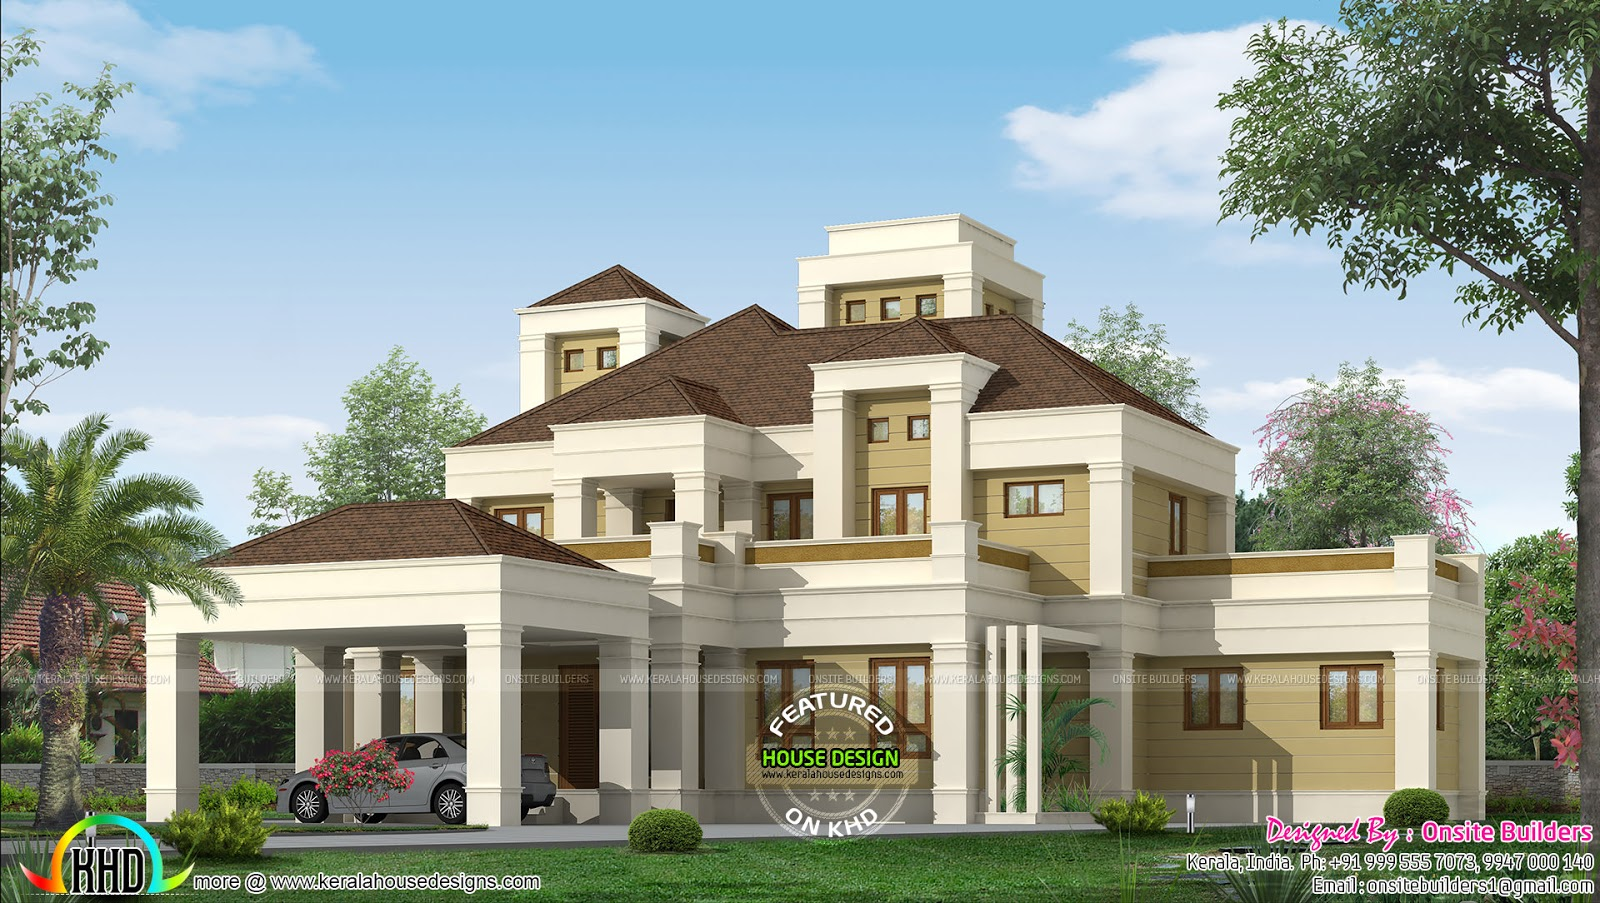 Elegant colonial home plan kerala home design and floor for Home designs 2017 kerala